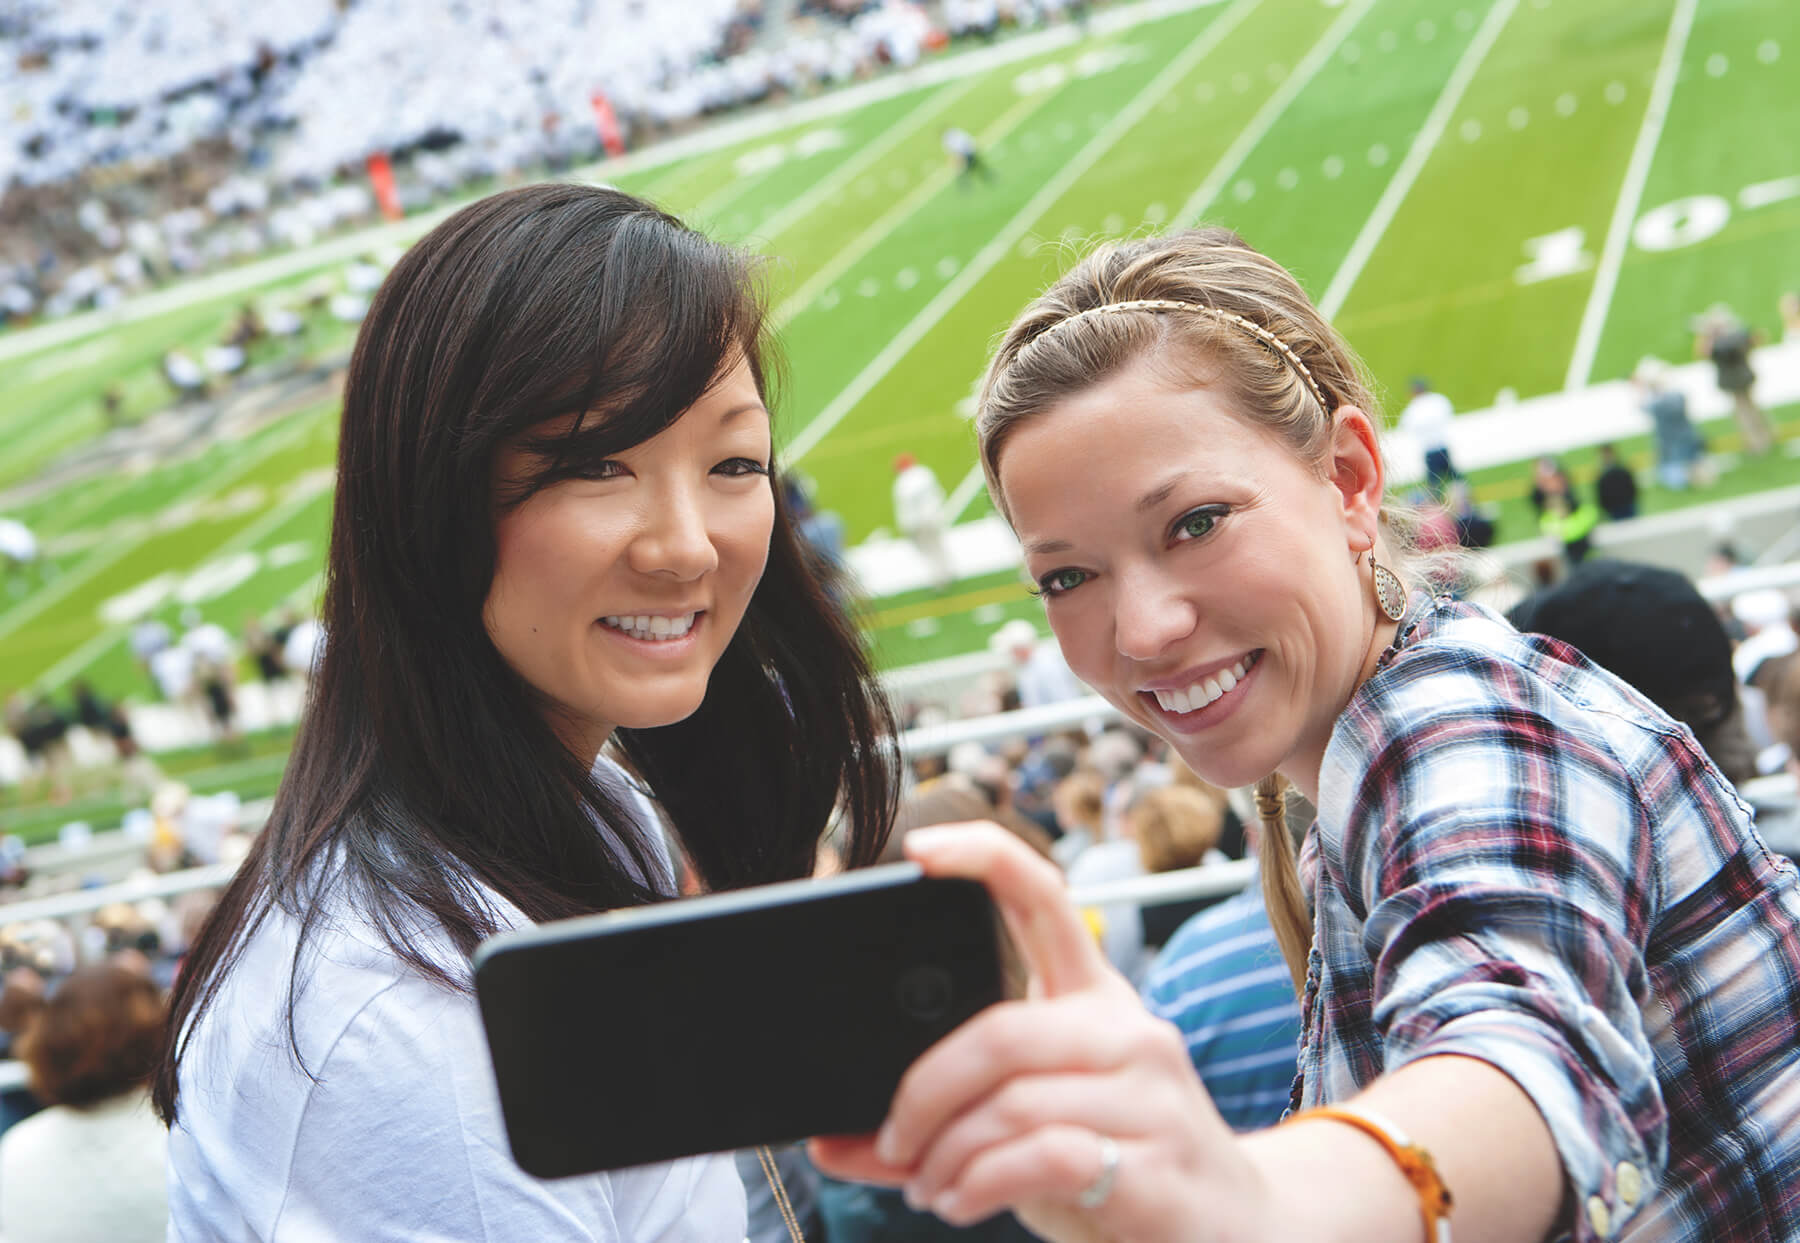 Five ways your phone can improve your game day experience